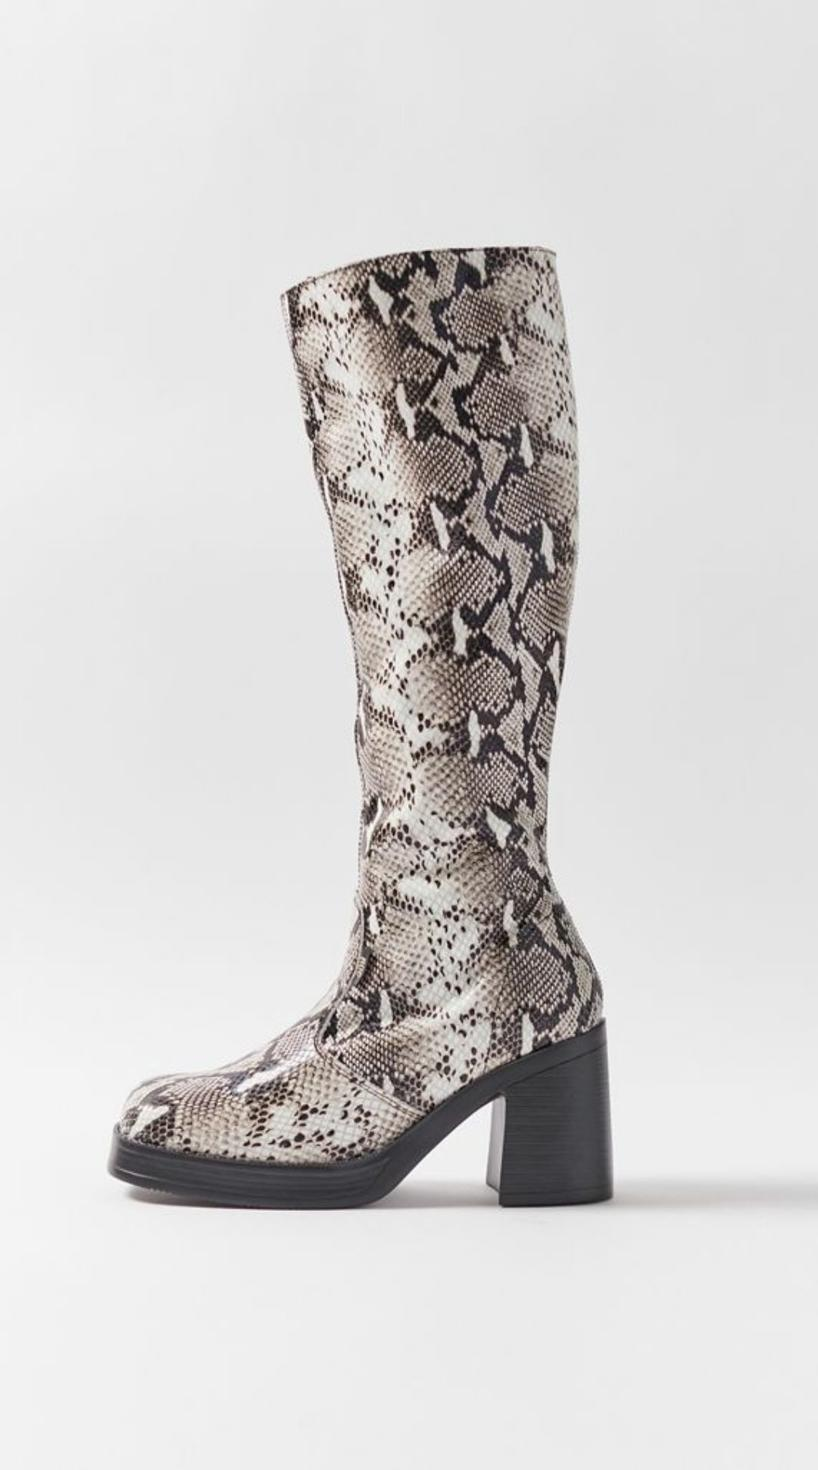 Fall Boots, Ankle boots, High knee boots, Heeled boots